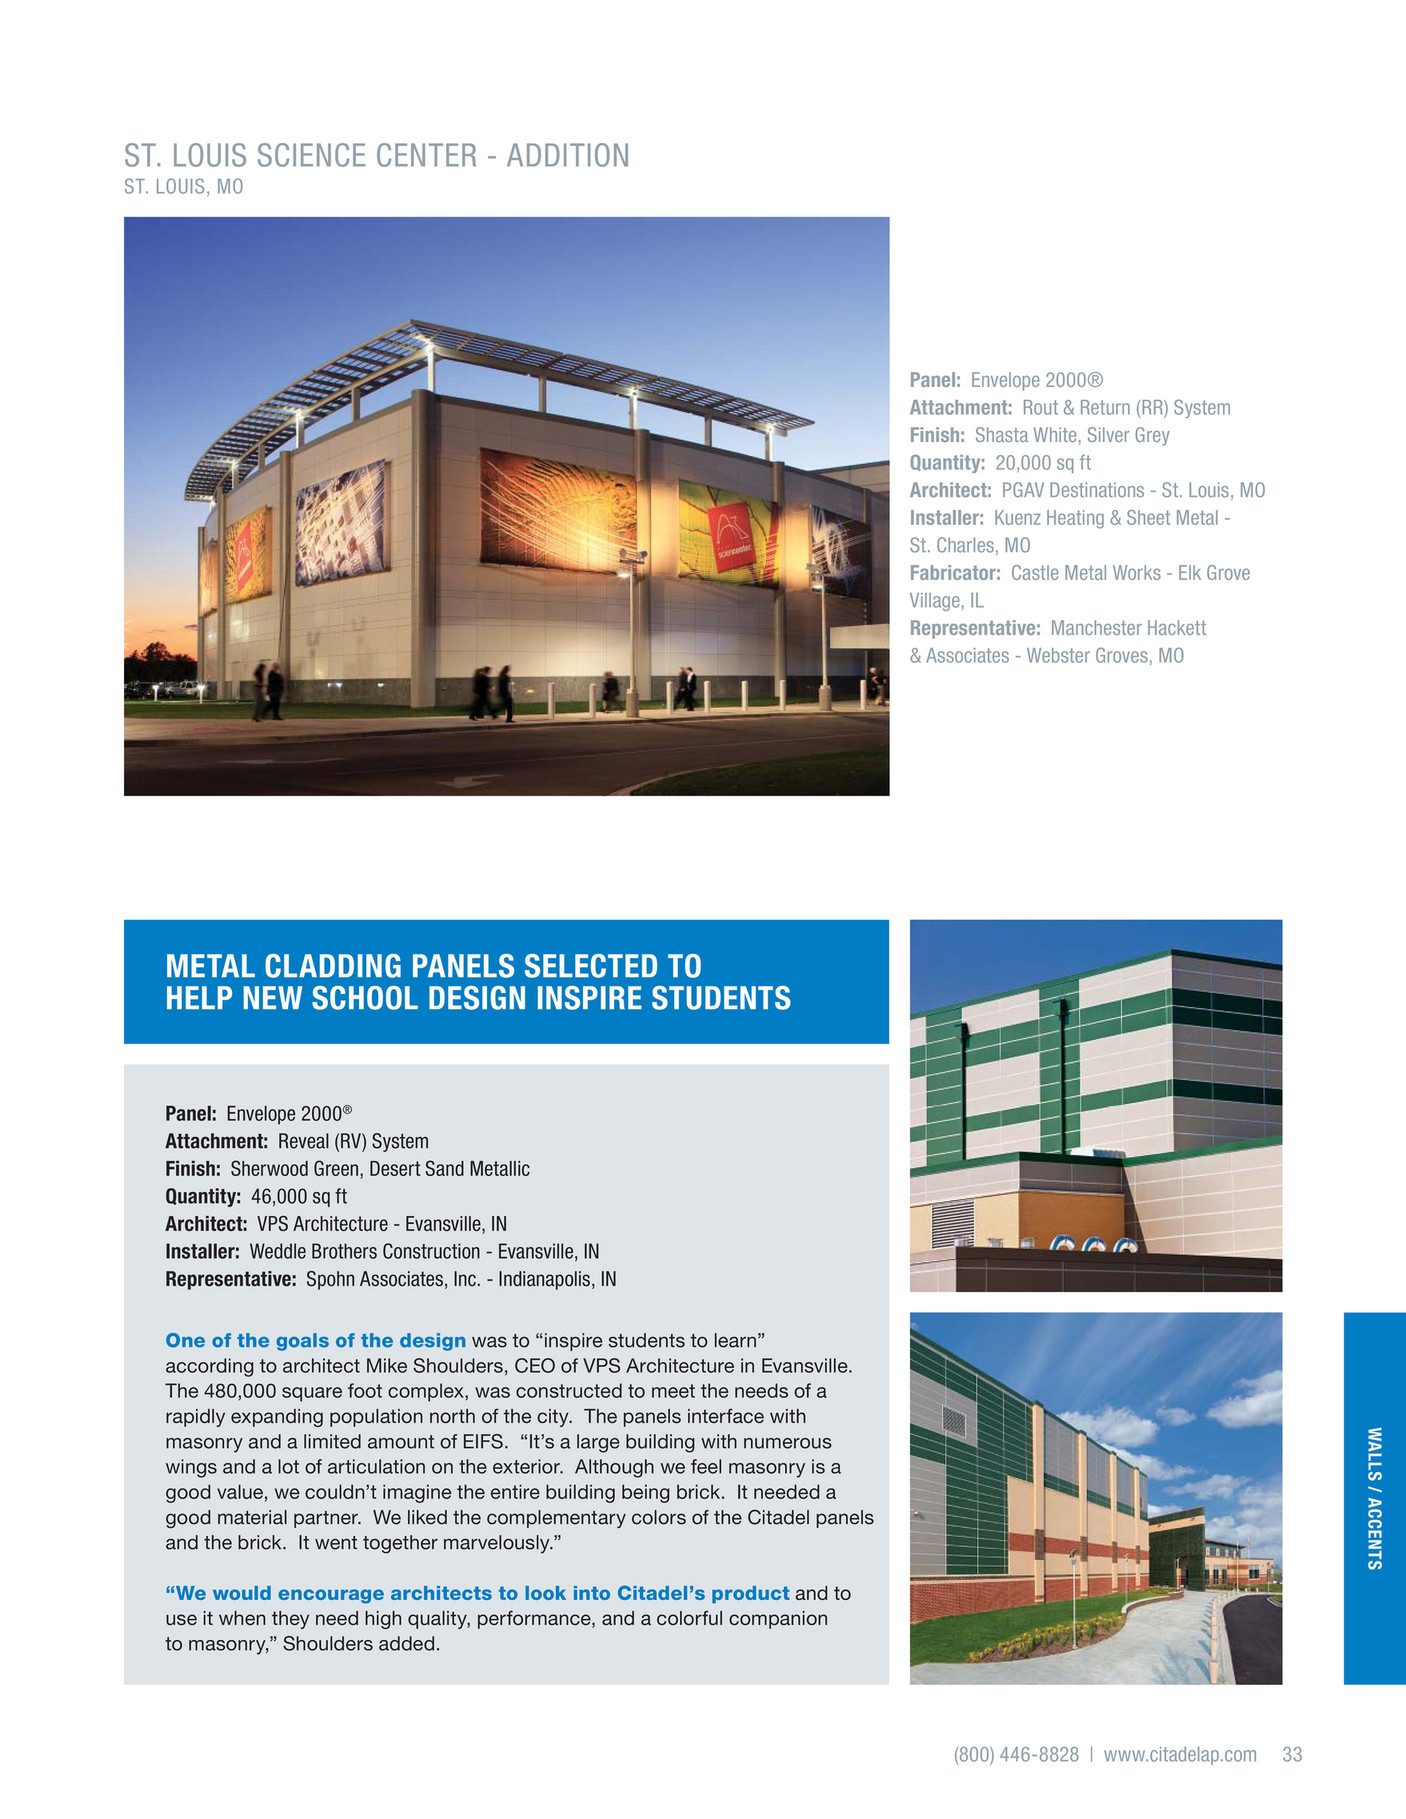 srp building products inc - walls - cladding concepts - page 32-33